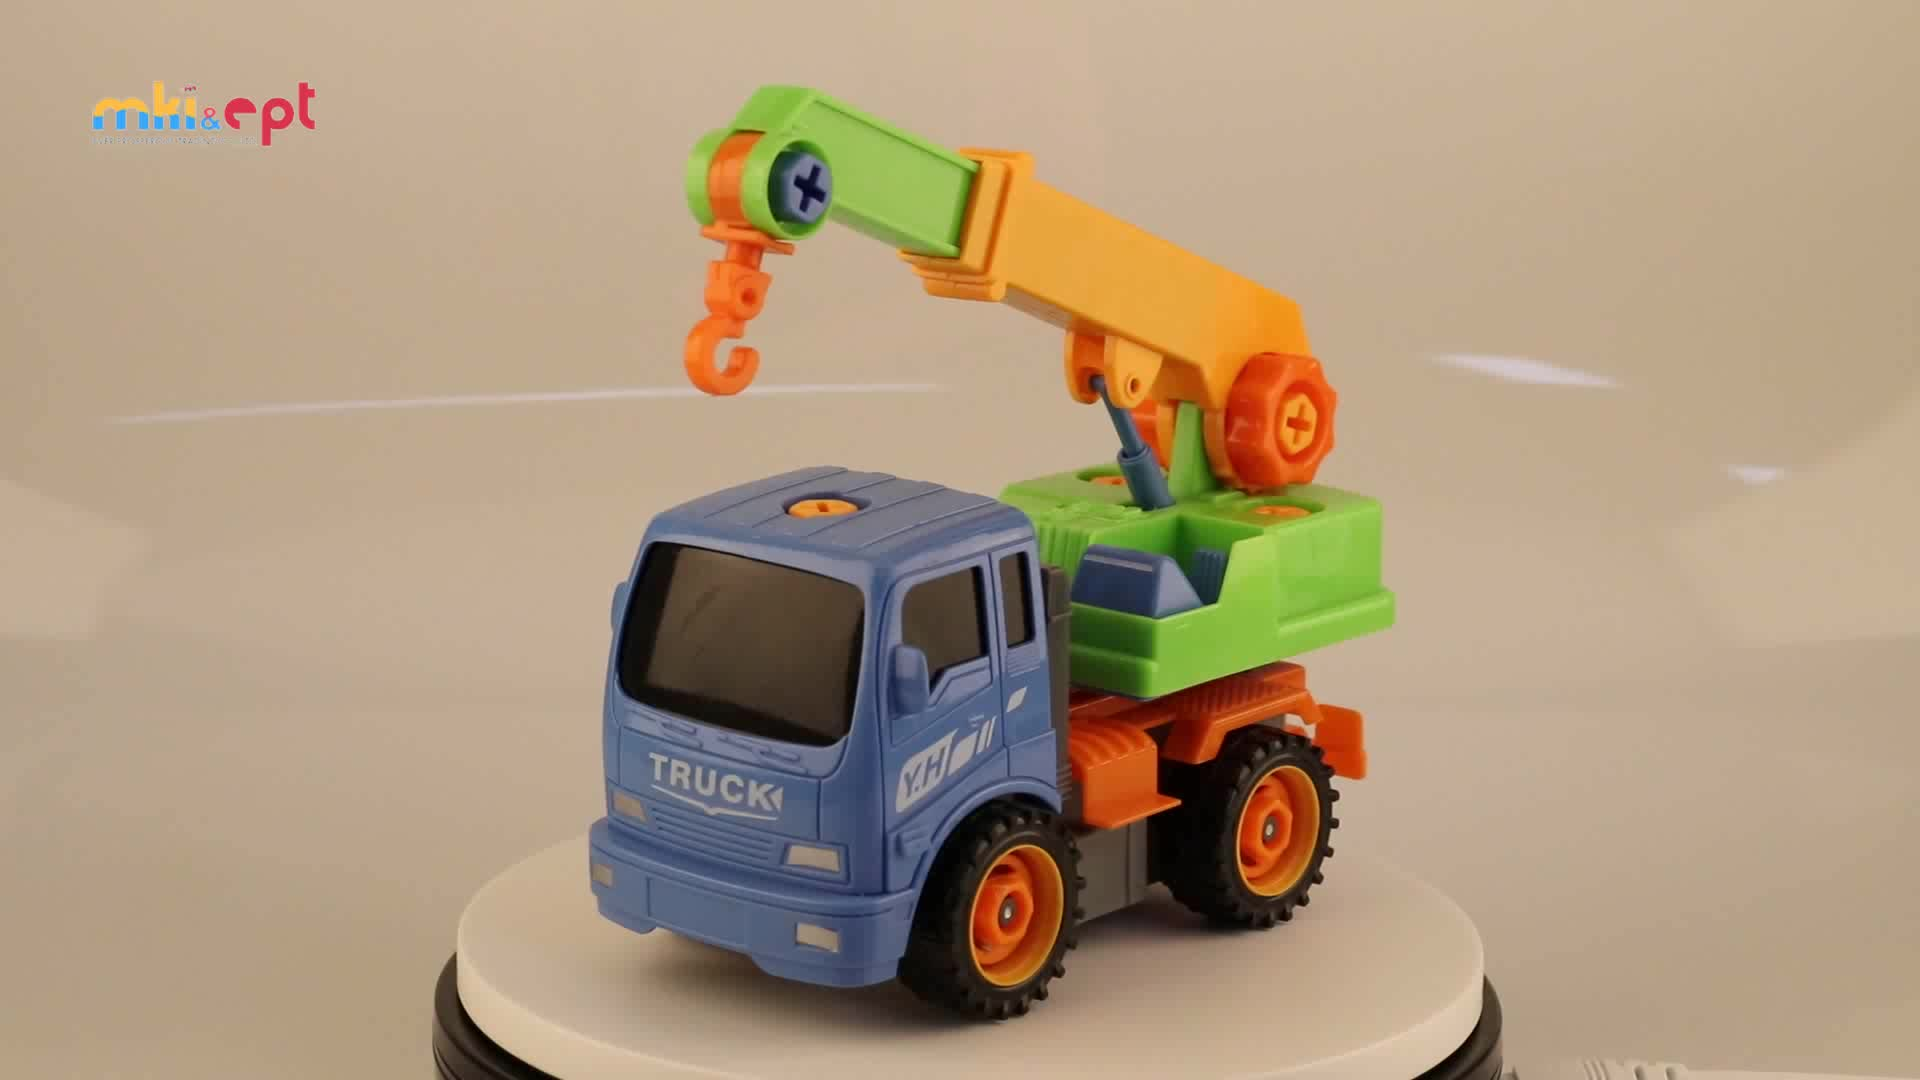 2018 New DIY Toy Crane Truck Friction Car Assembly Kit With Tools For Kids